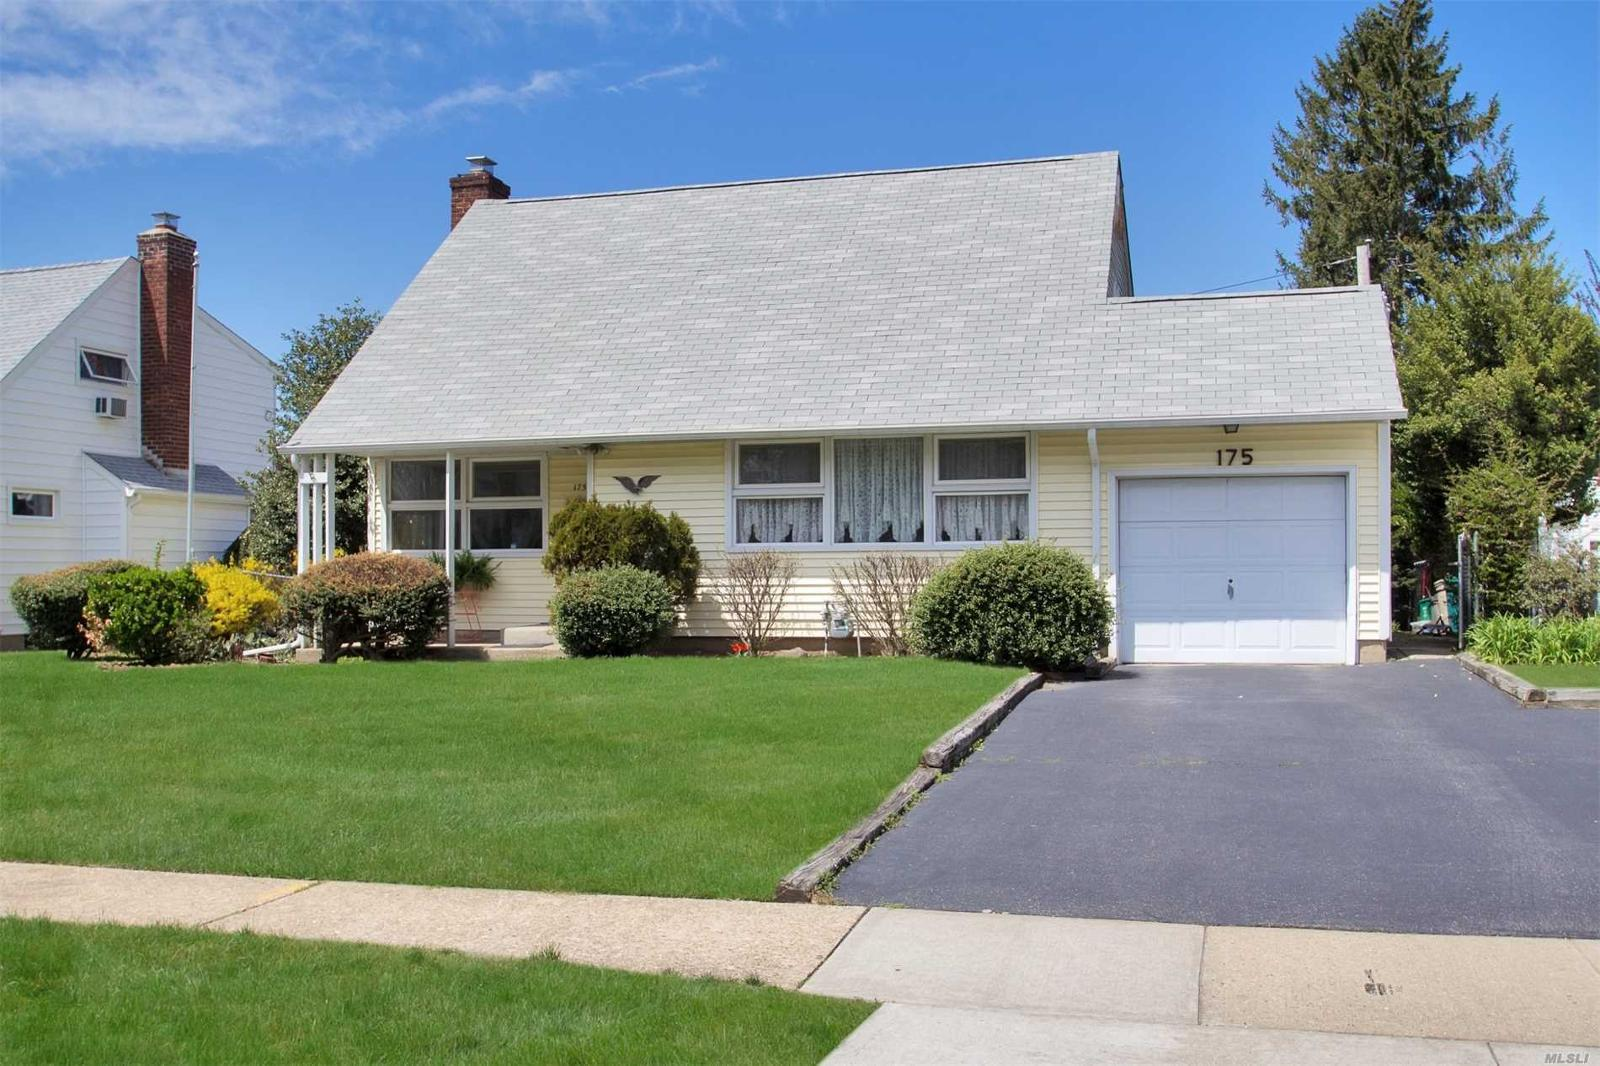 175 Meadow St, Garden City, NY — MLS# 3024519 — Coldwell Banker